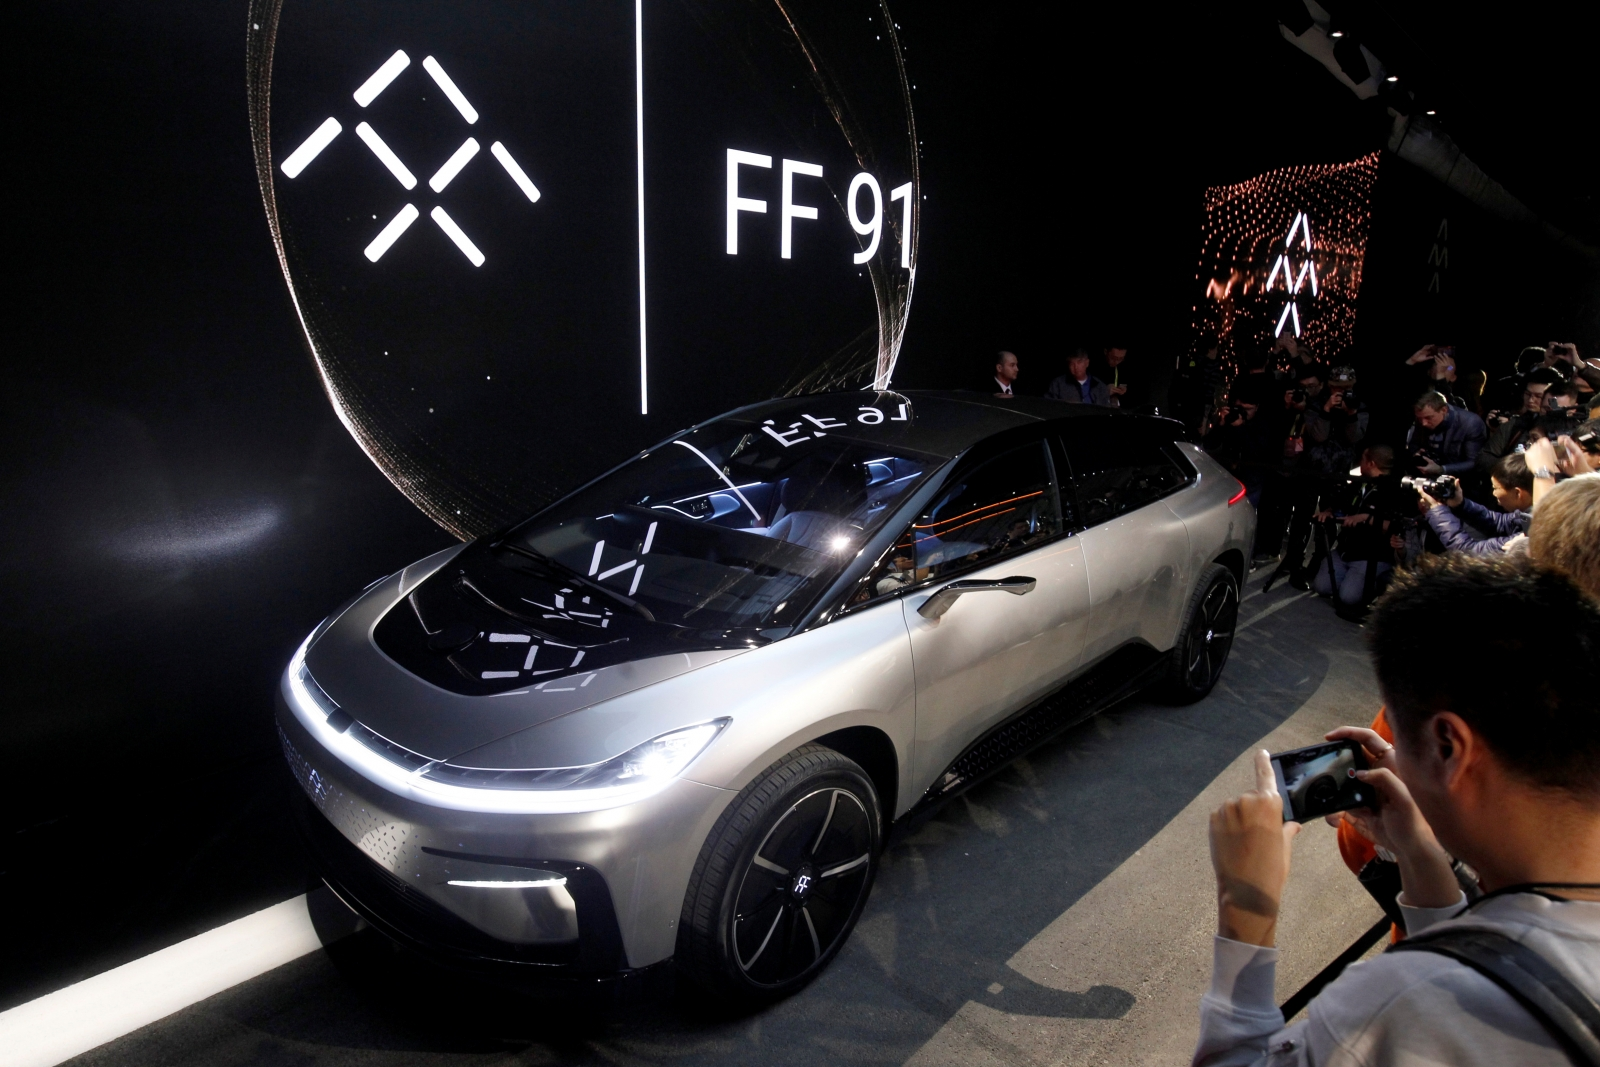 Faraday Future FF91 electric car